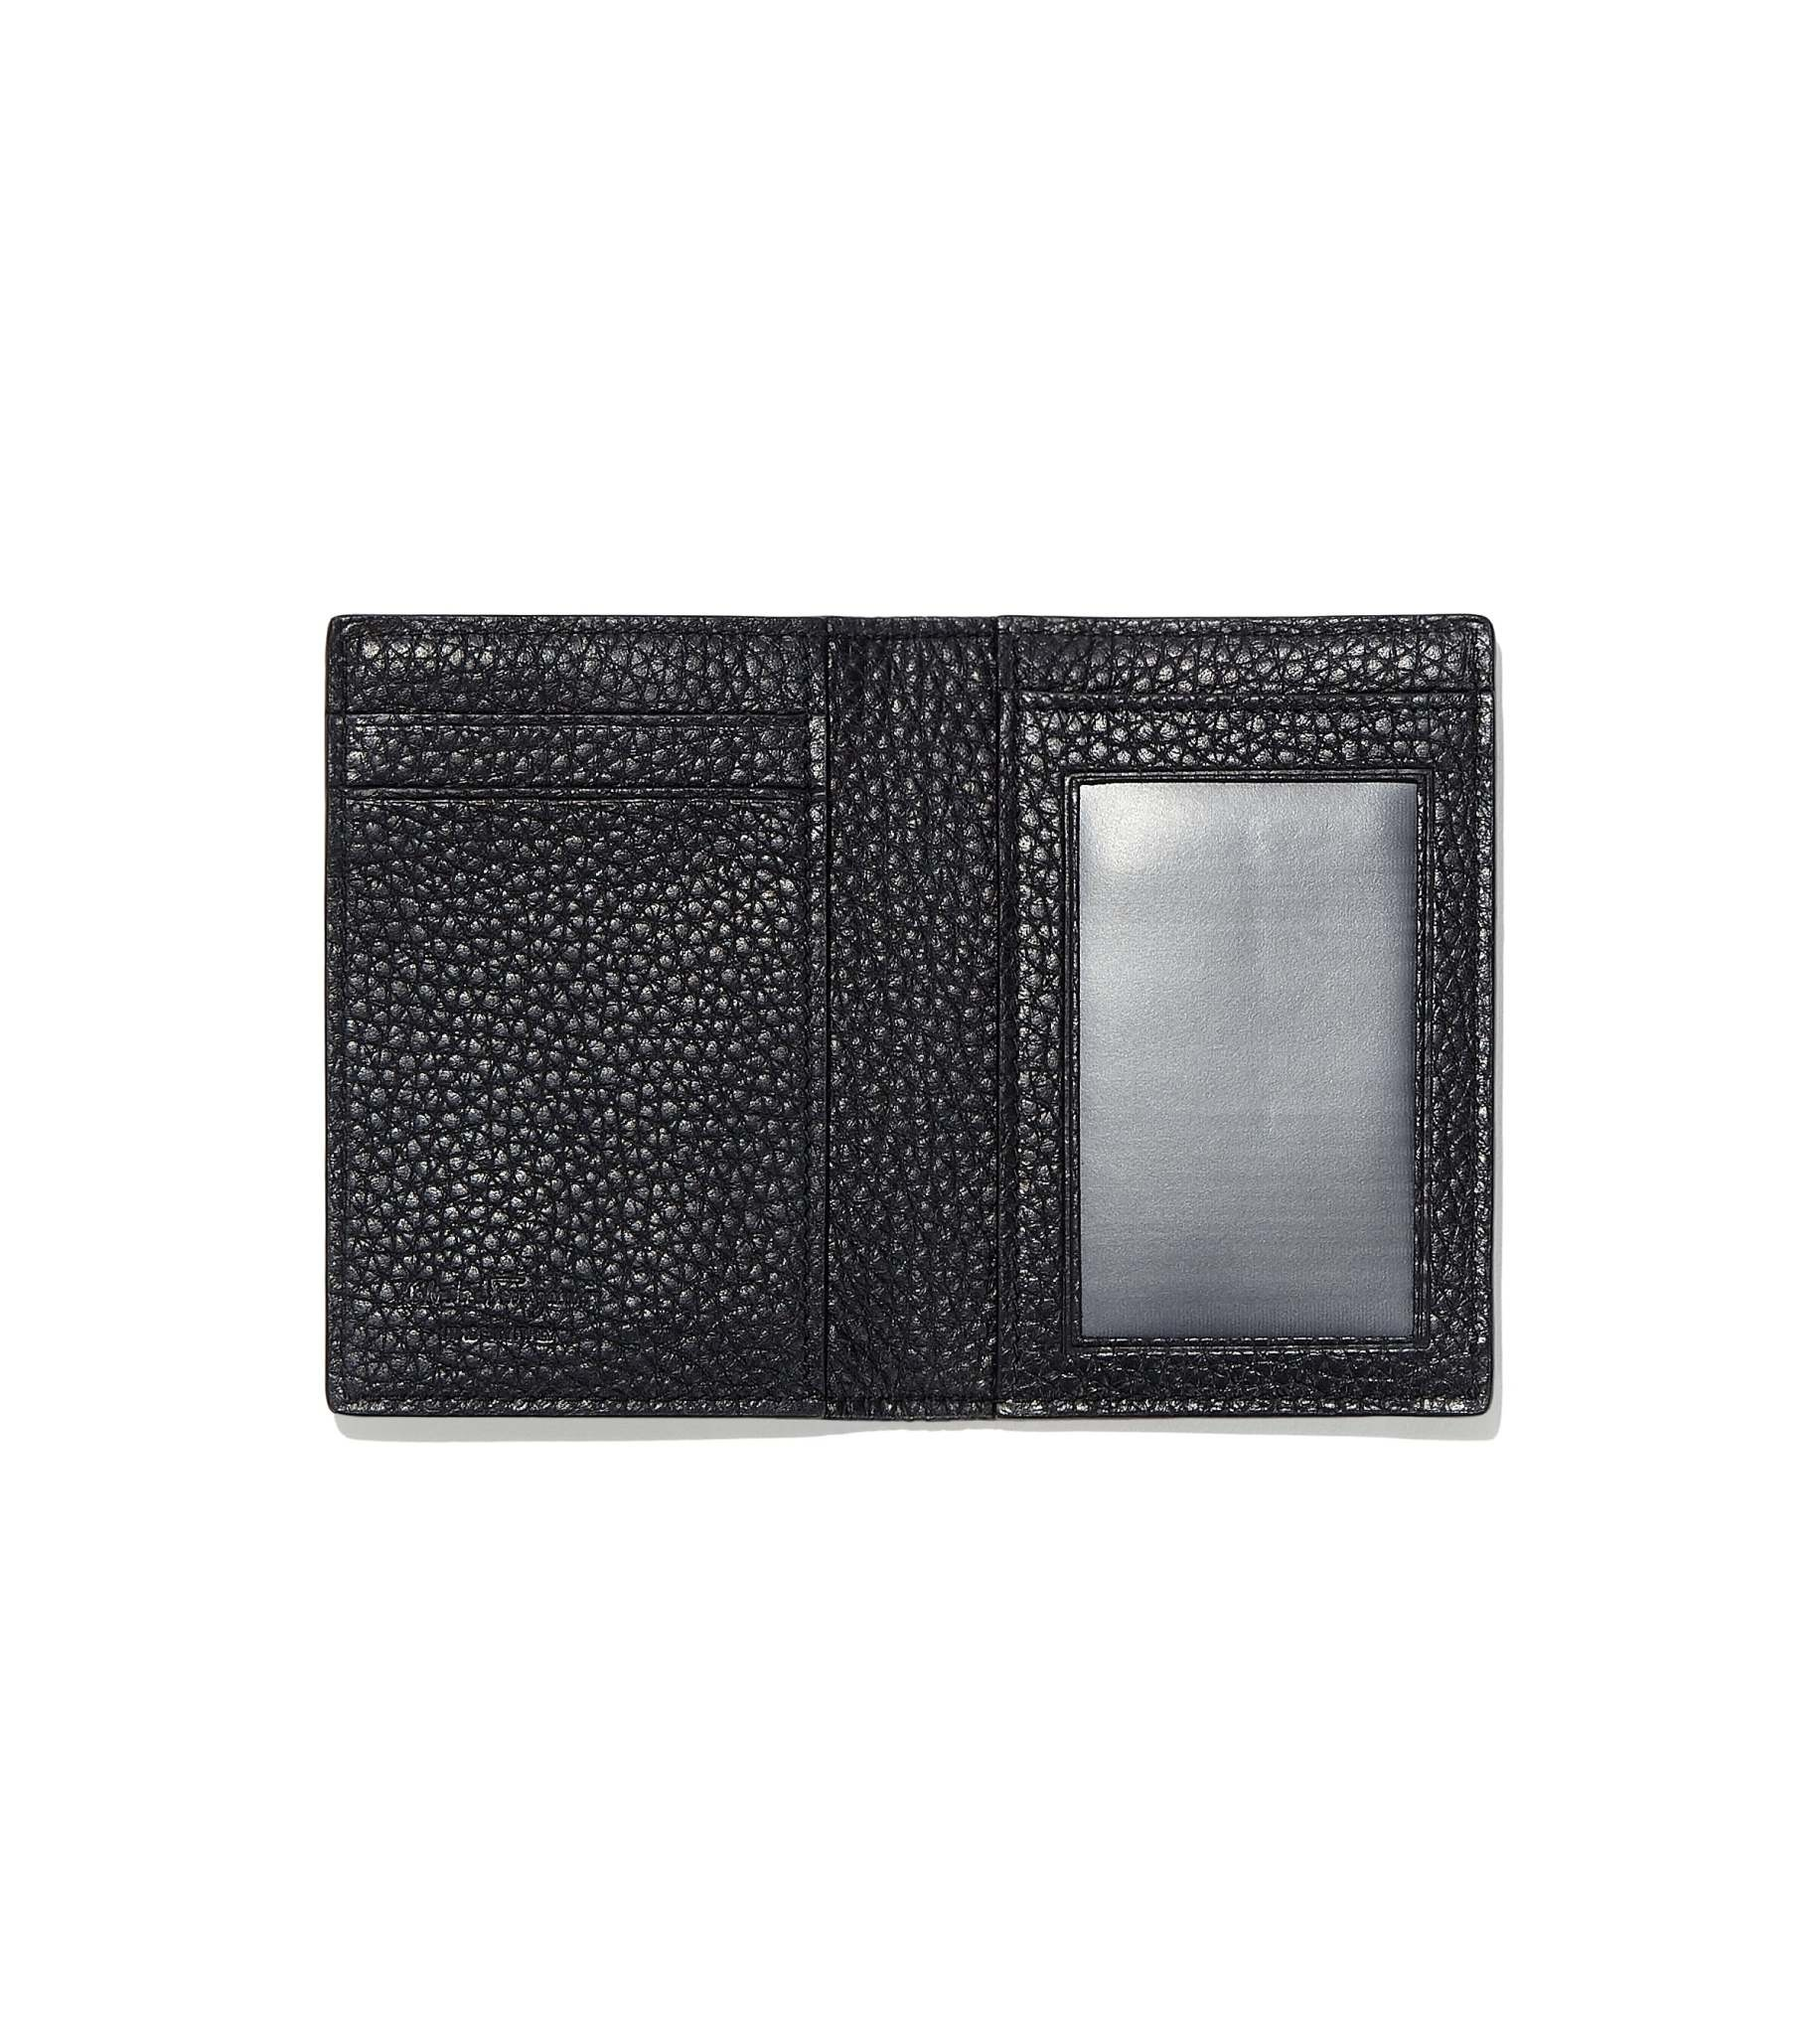 SALVATORE FERRAGAMO SALVATORE FERRAGAMO - CARD HOLDER WITH ID WINDOW - 66A139